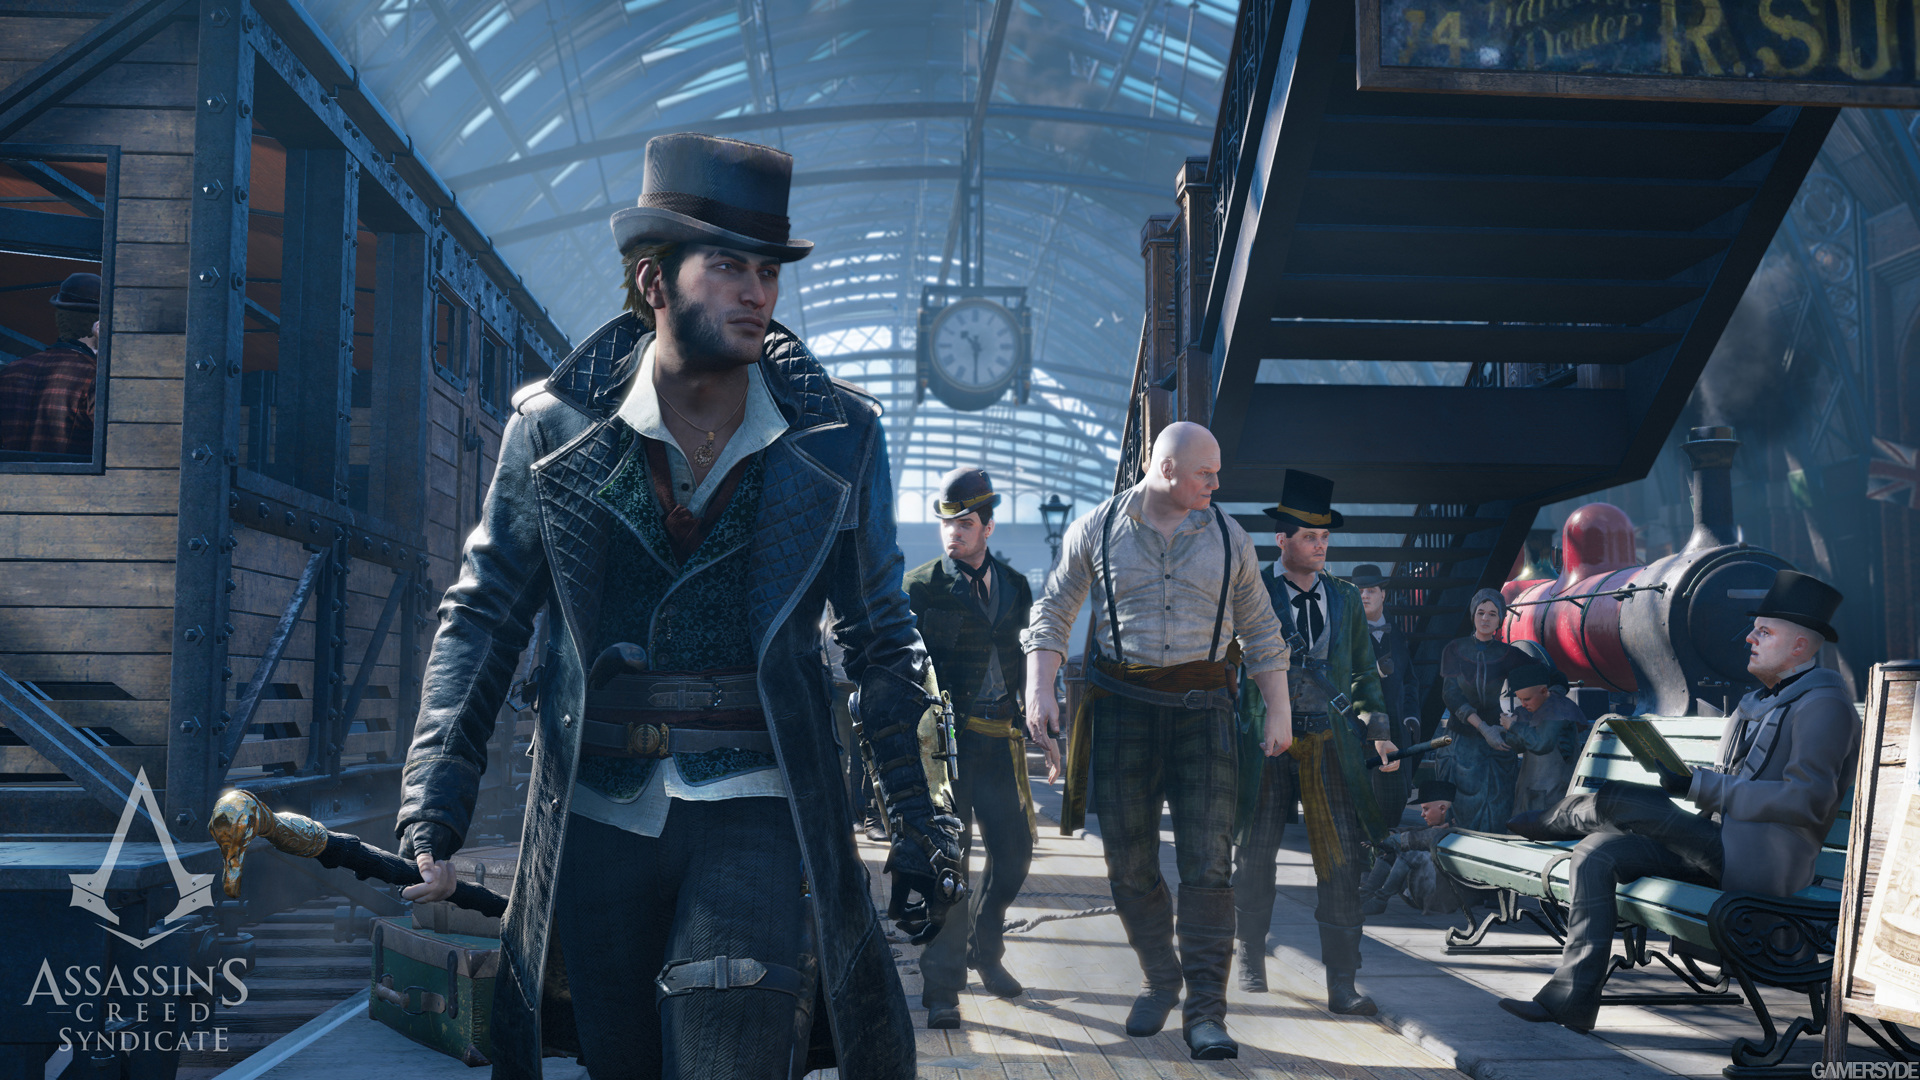 image_assassin_s_creed_syndicate-28271-3228_0003